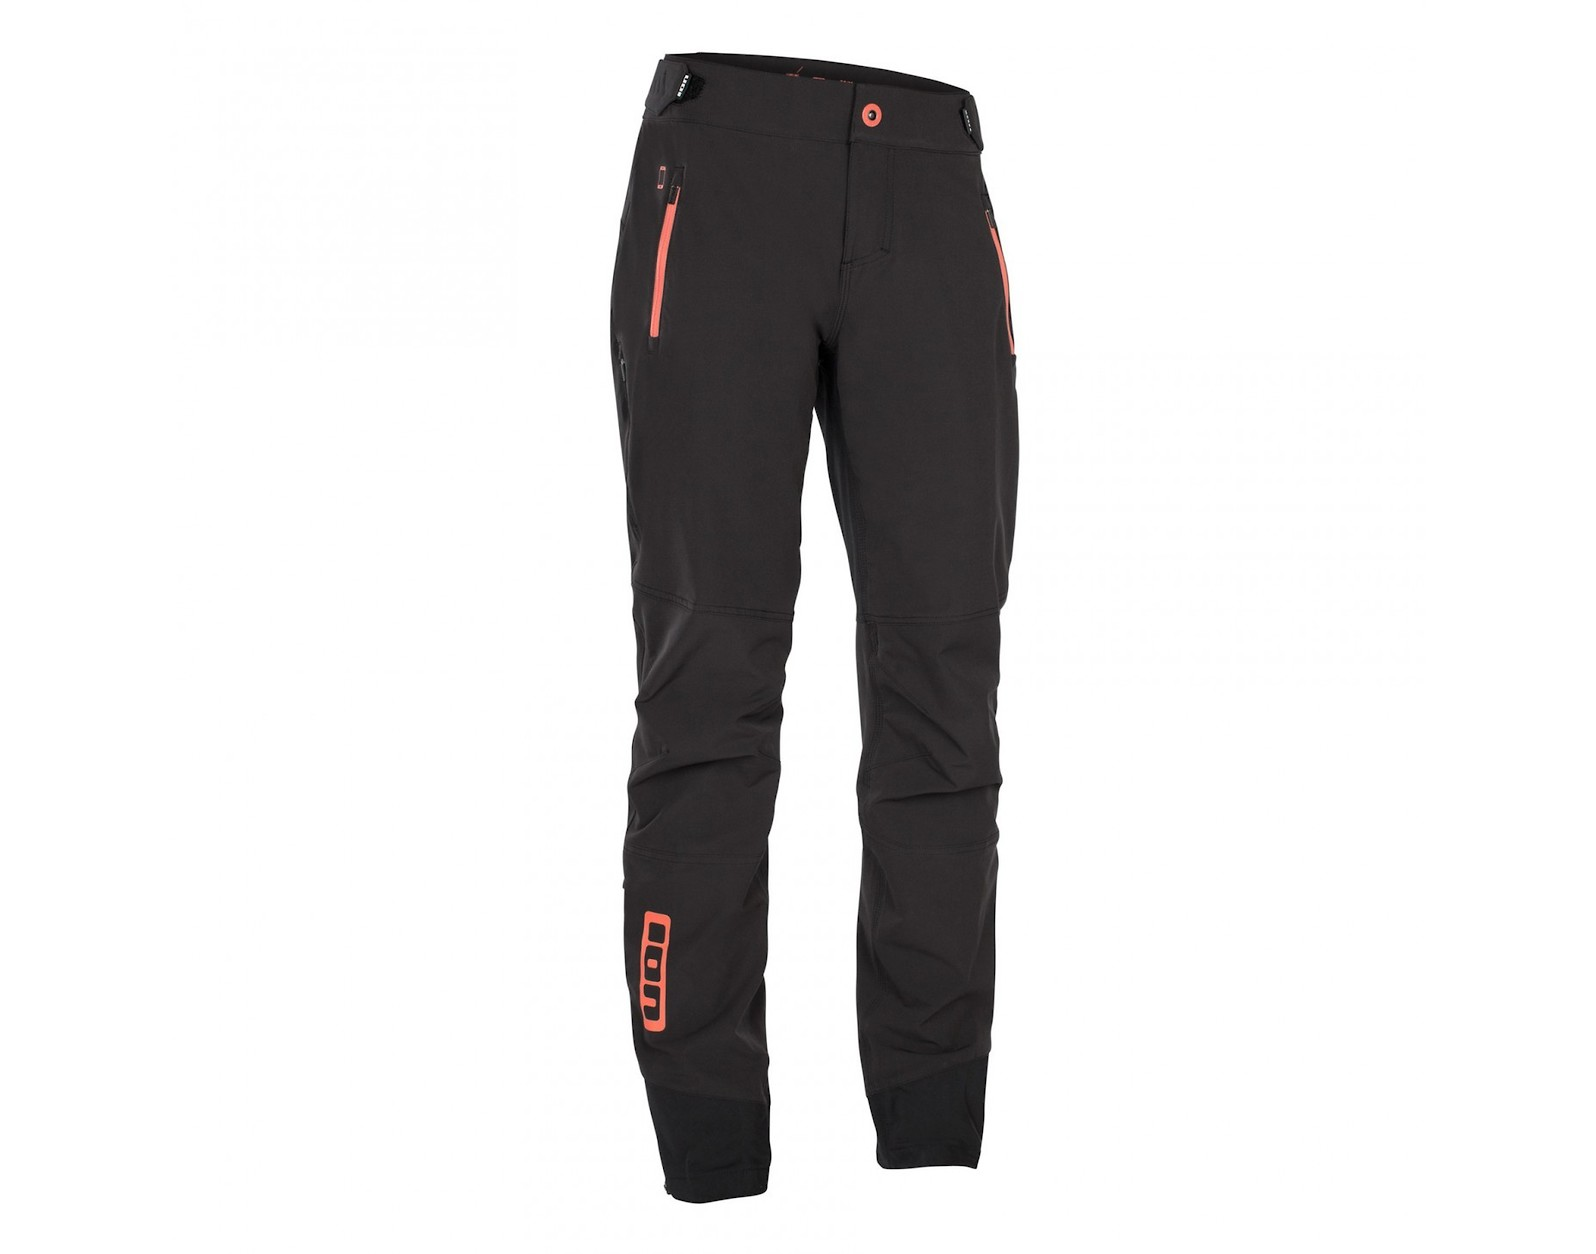 ION Shelter Softshell Women's Pants